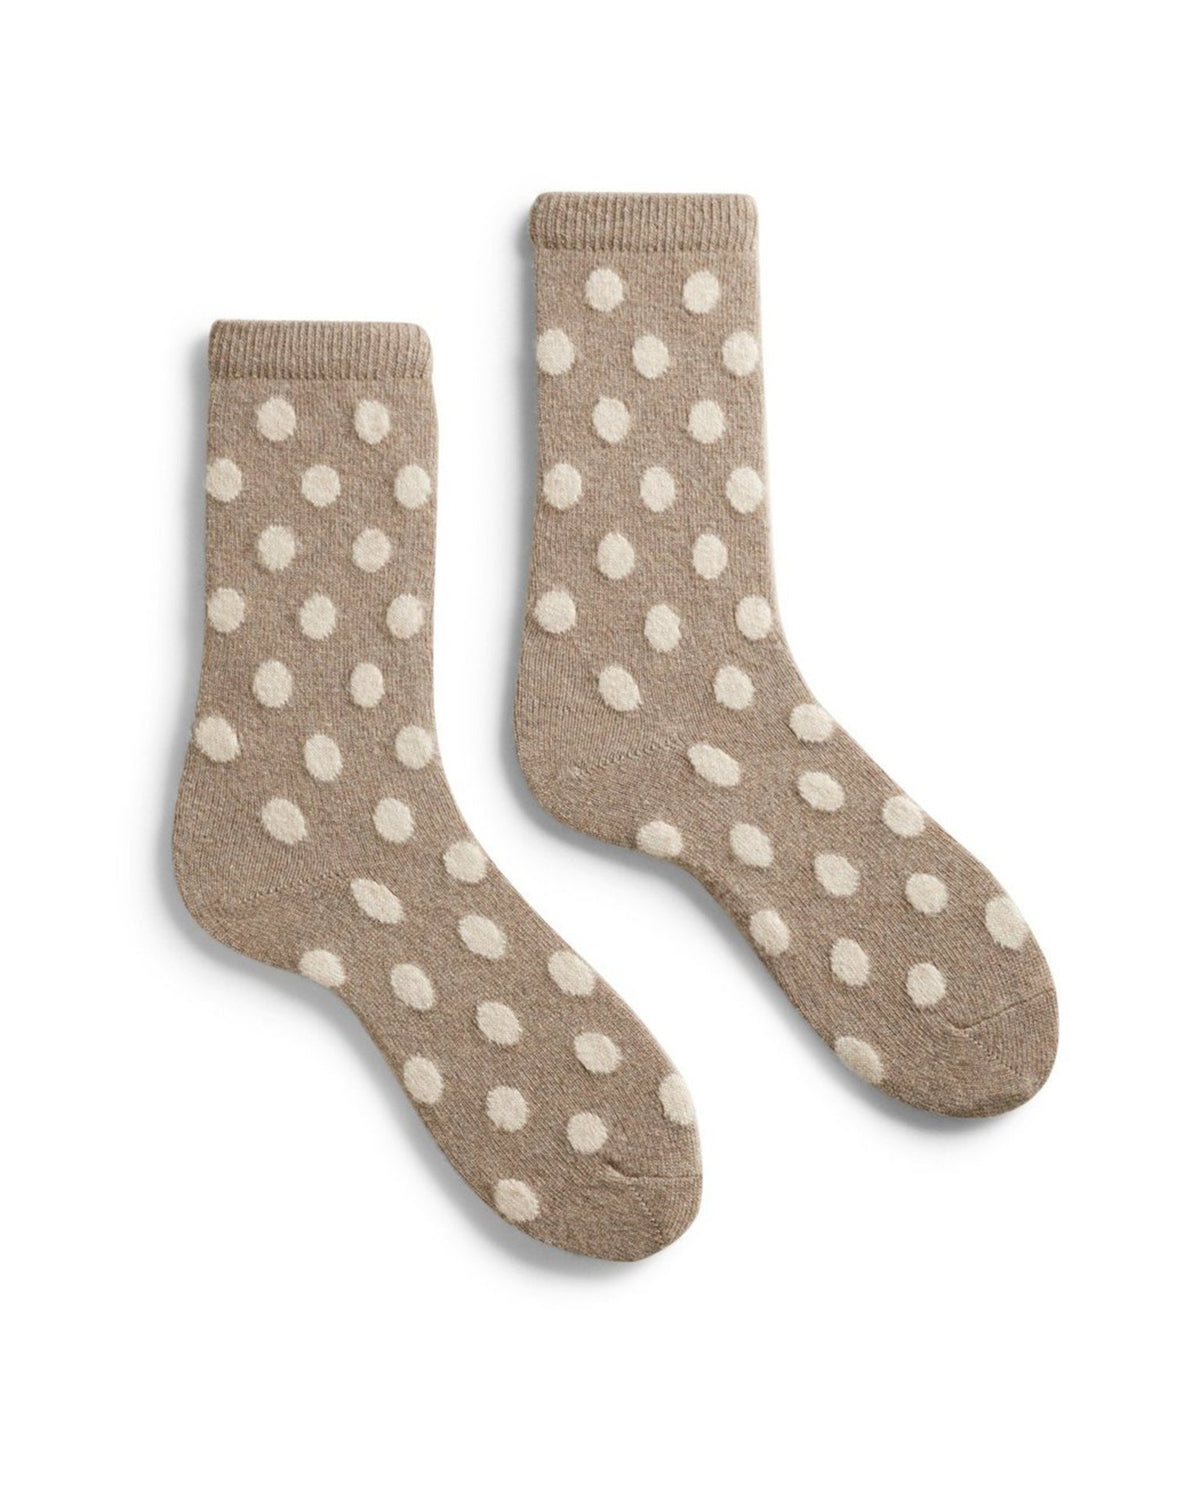 Lisa B. Accessories Mushroom / O/S Dot Socks